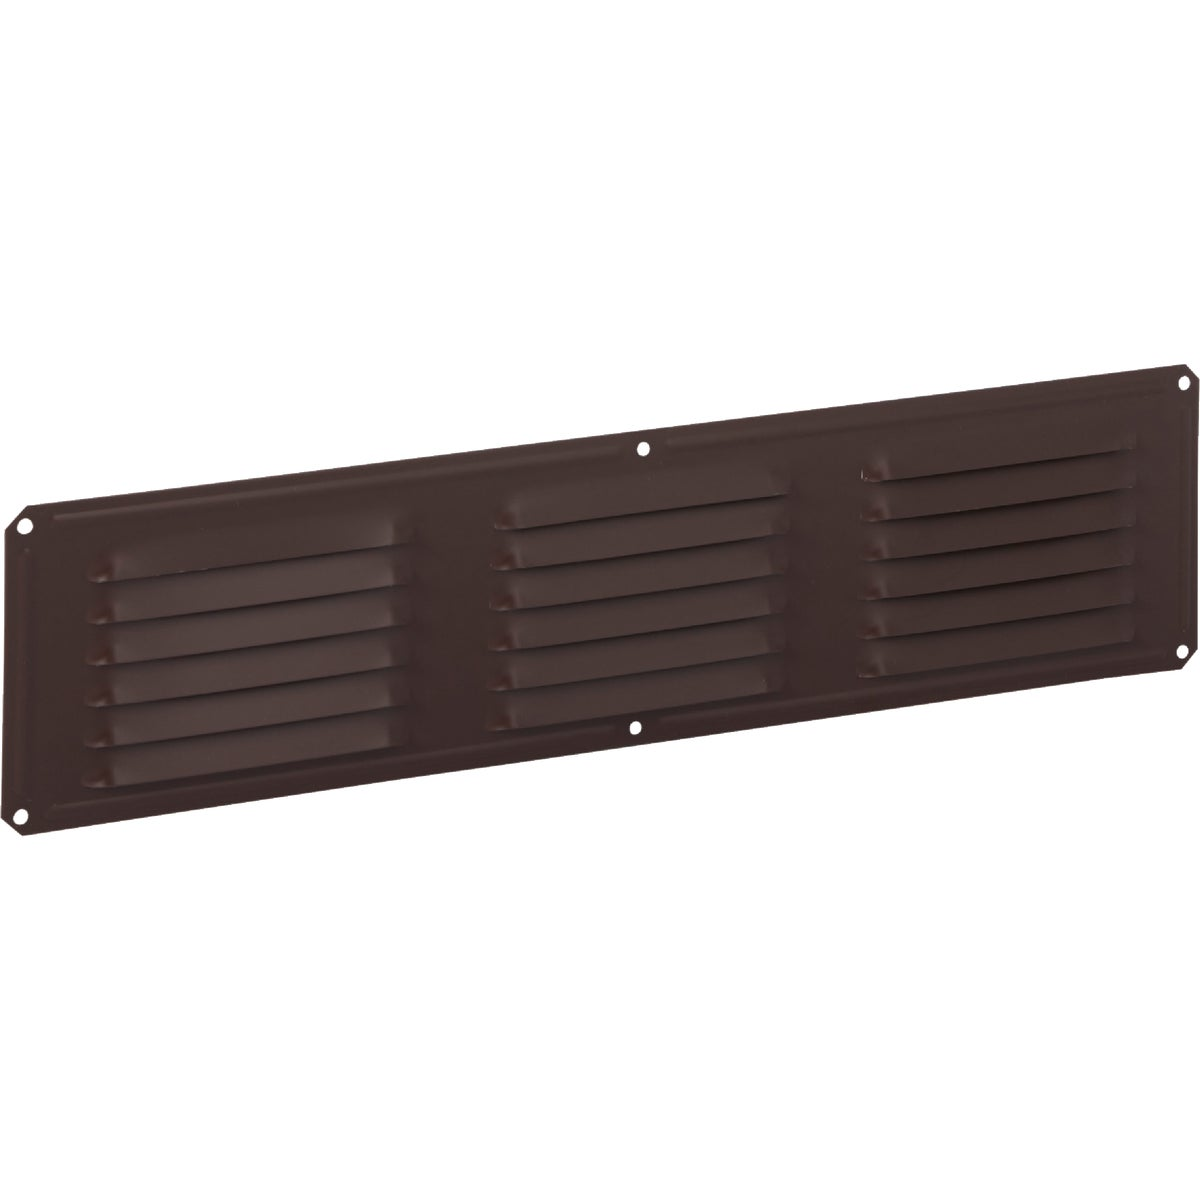 16X4 BRN UNDER EAVE VENT - 84228 by Air Vent Inc